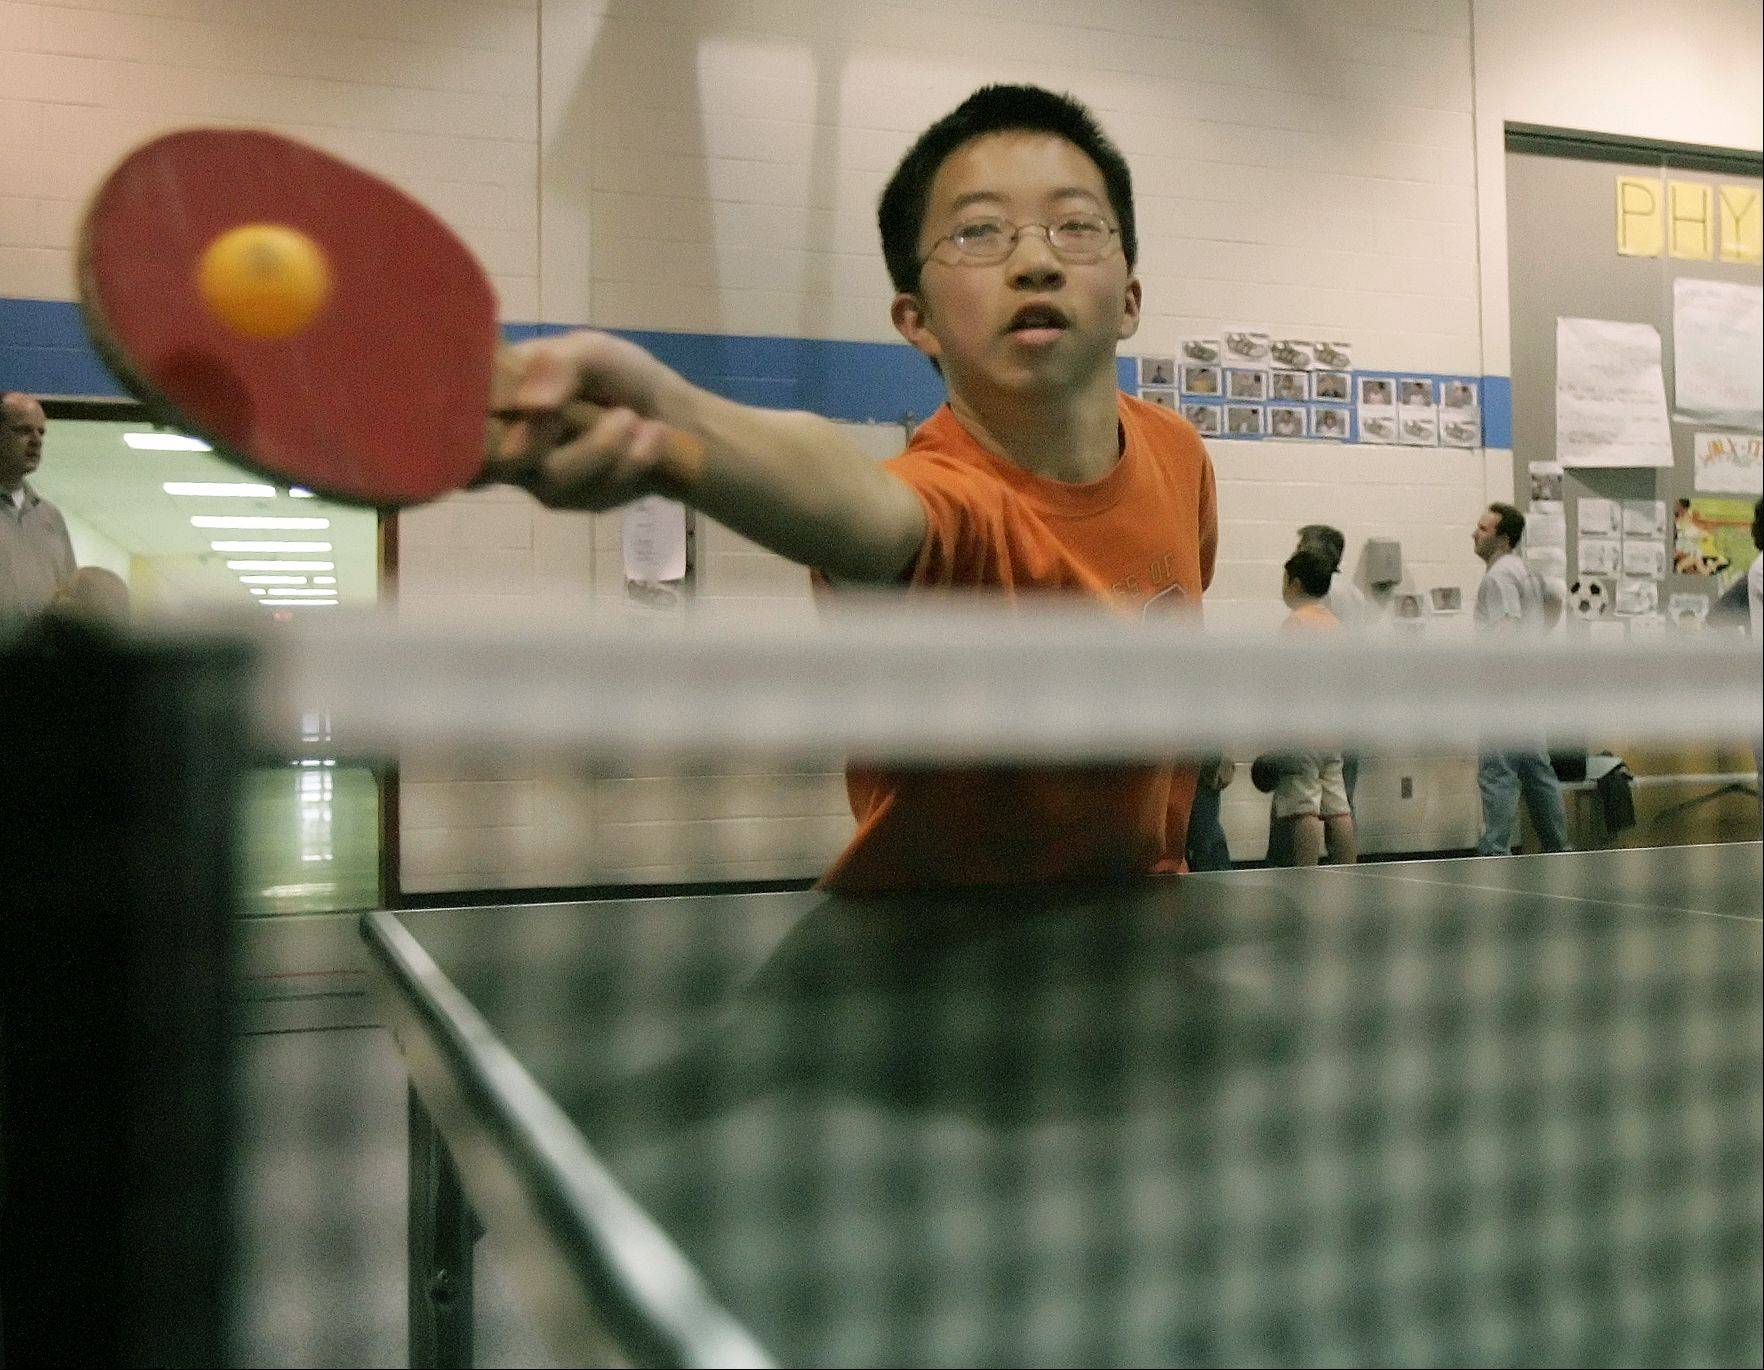 Table tennis players from across the region will compete Jan. 26 in the annual Naperville Table Tennis Tournament.